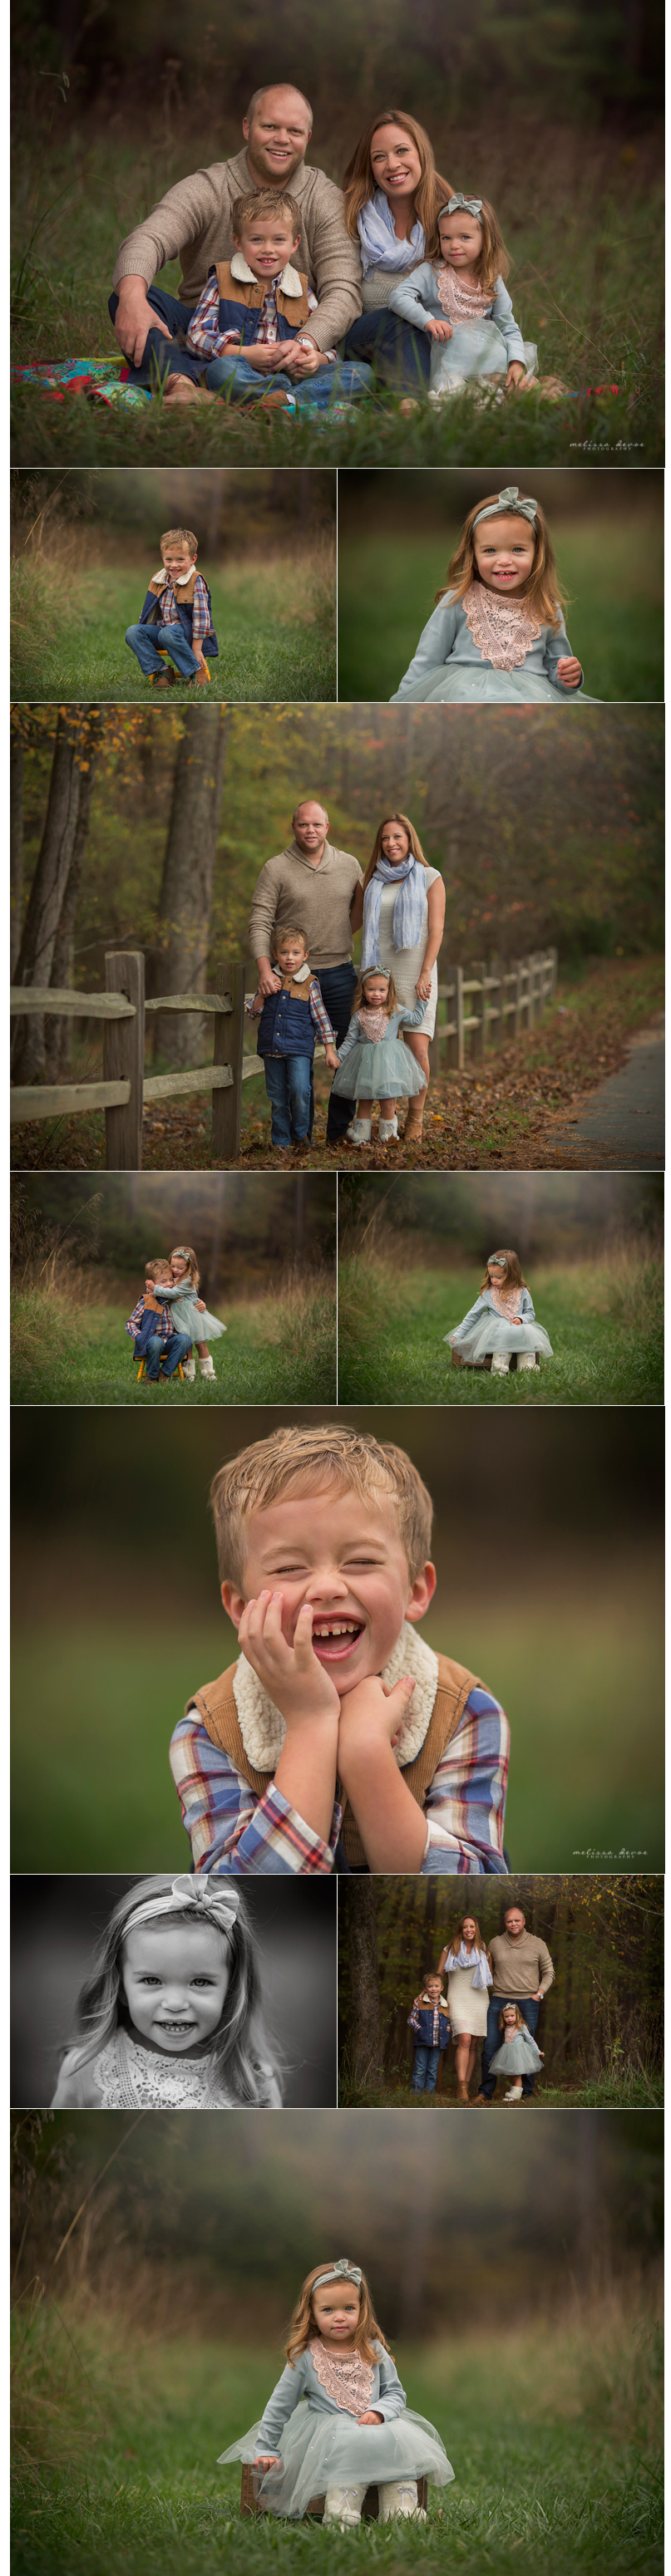 Raleigh Durham Child and Family Photographer Melissa DeVoe